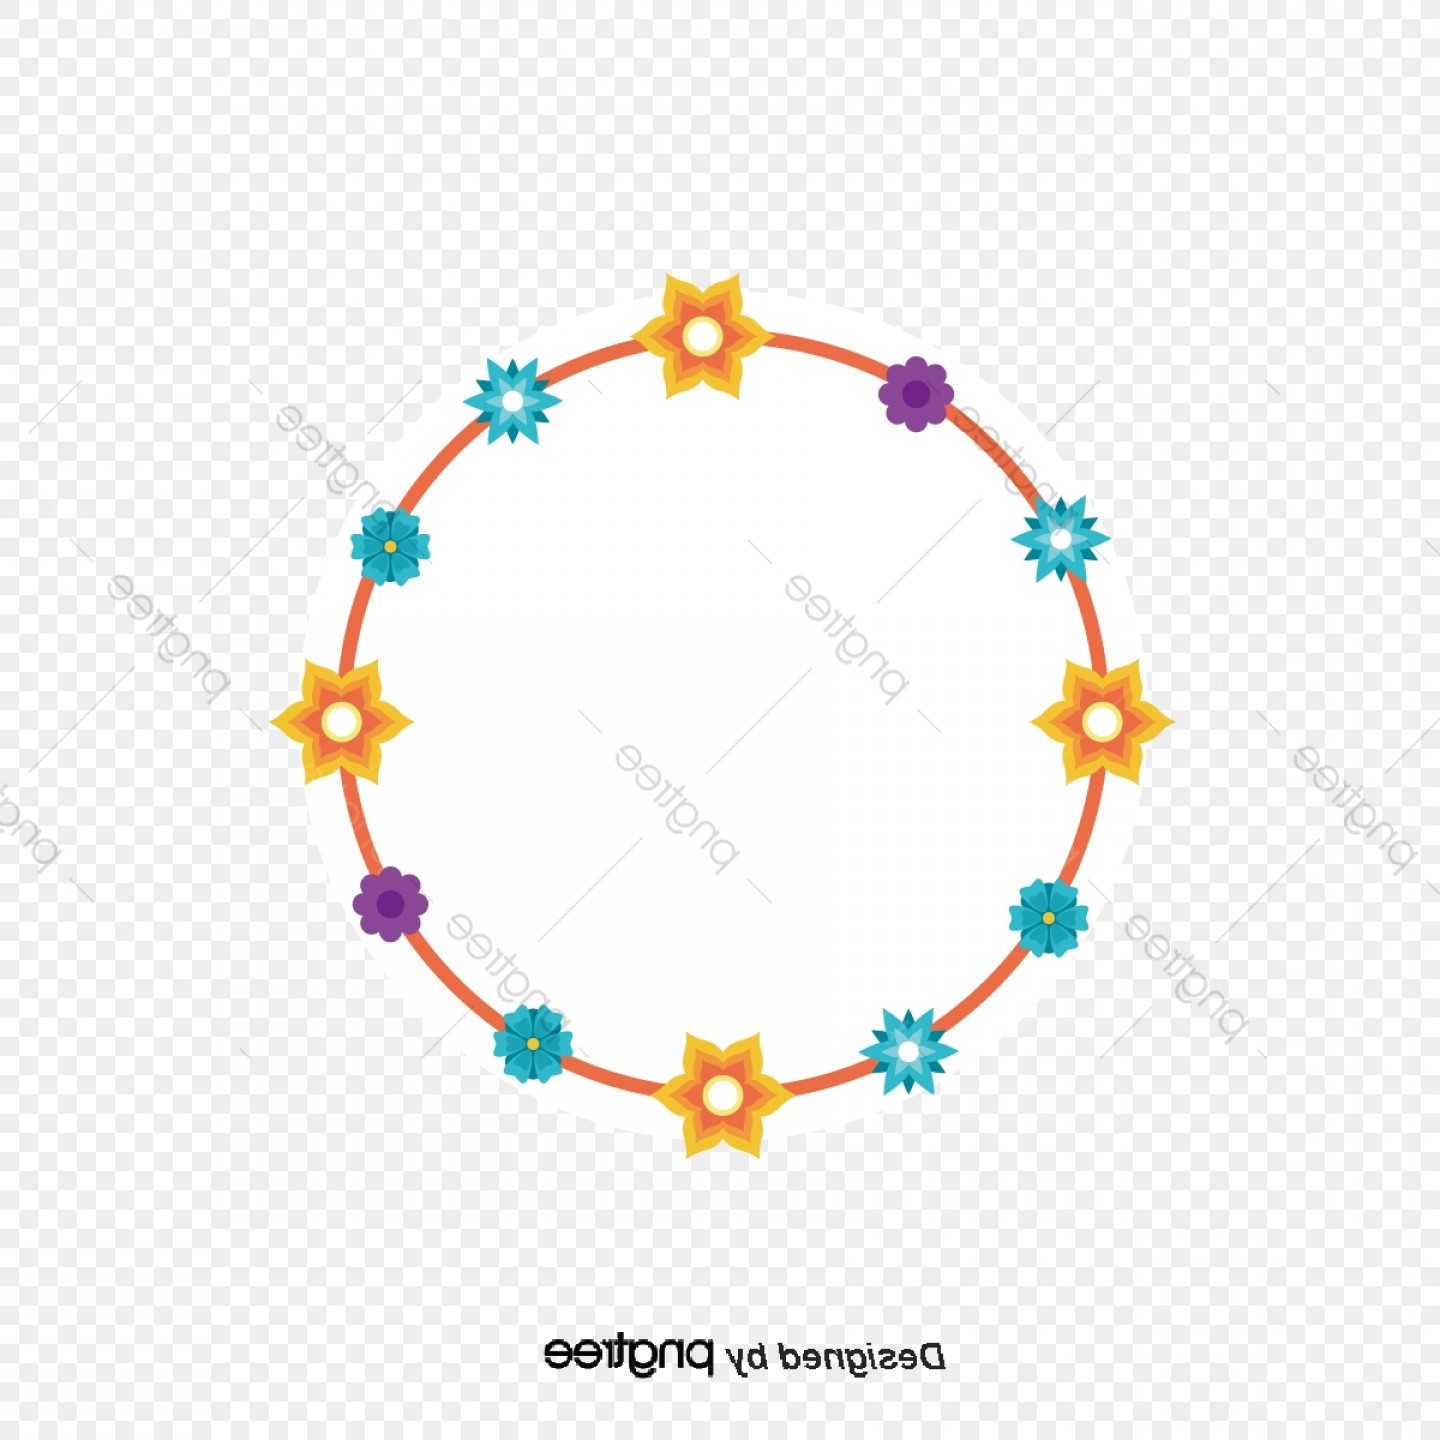 Blue And Orange Circle Vector: Circle Of Flowers Orange Sunflower Yellow Blue Flower Surrounded By A Circle